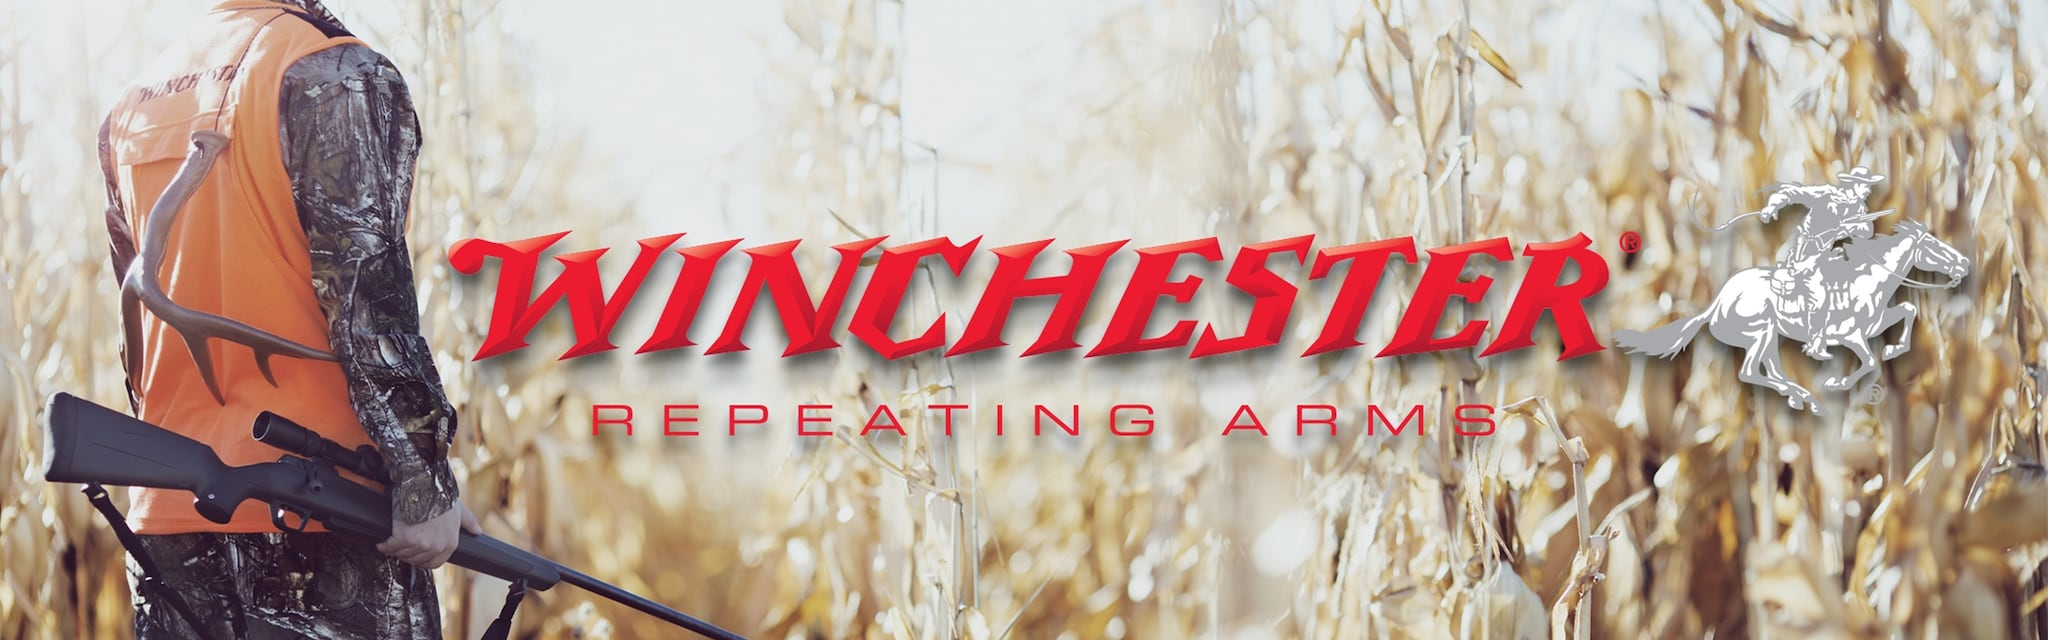 Winchester brand image